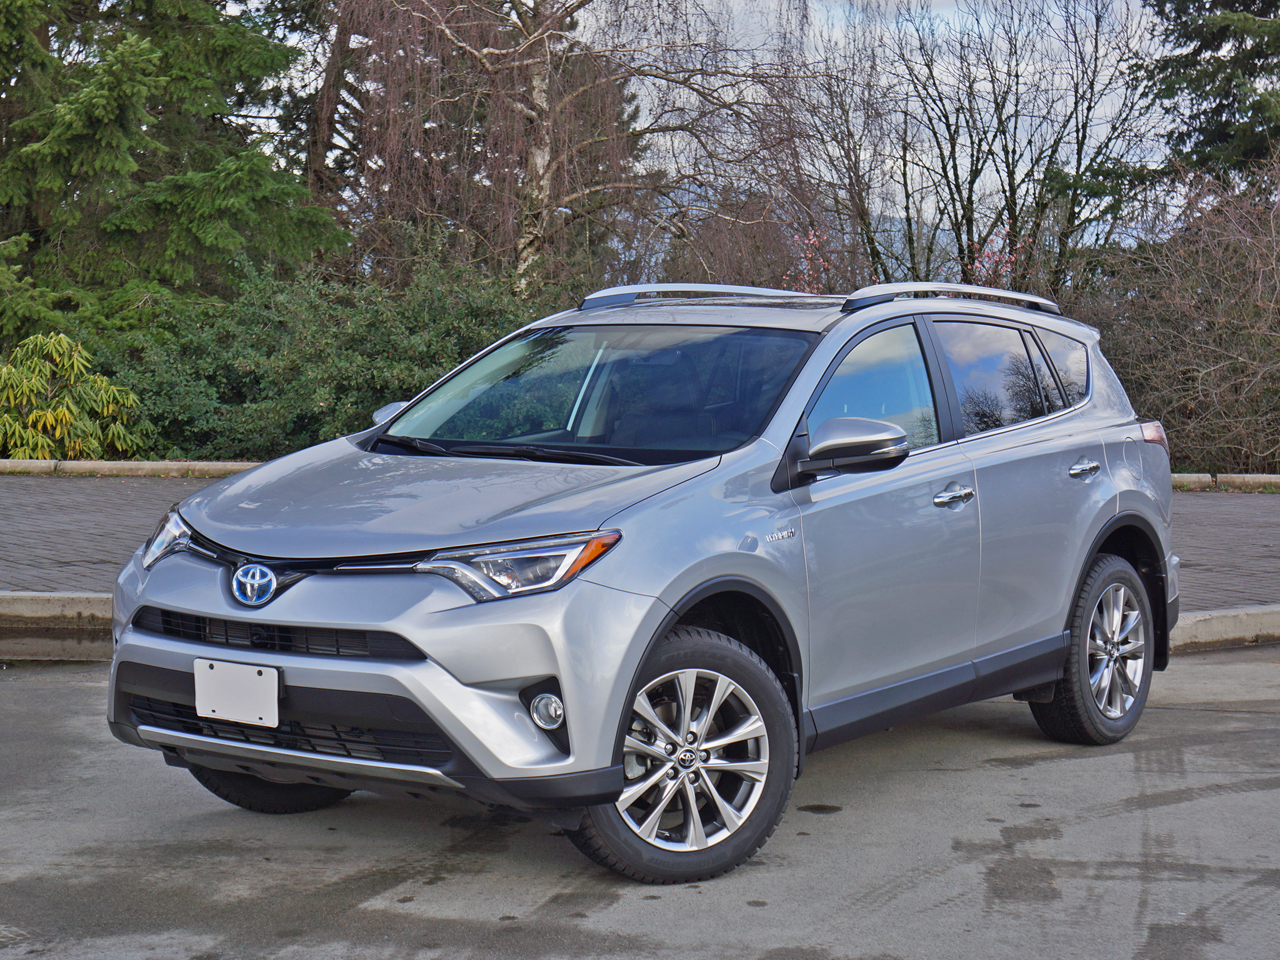 2016 toyota rav4 hybrid first drive review autotrader autos post. Black Bedroom Furniture Sets. Home Design Ideas